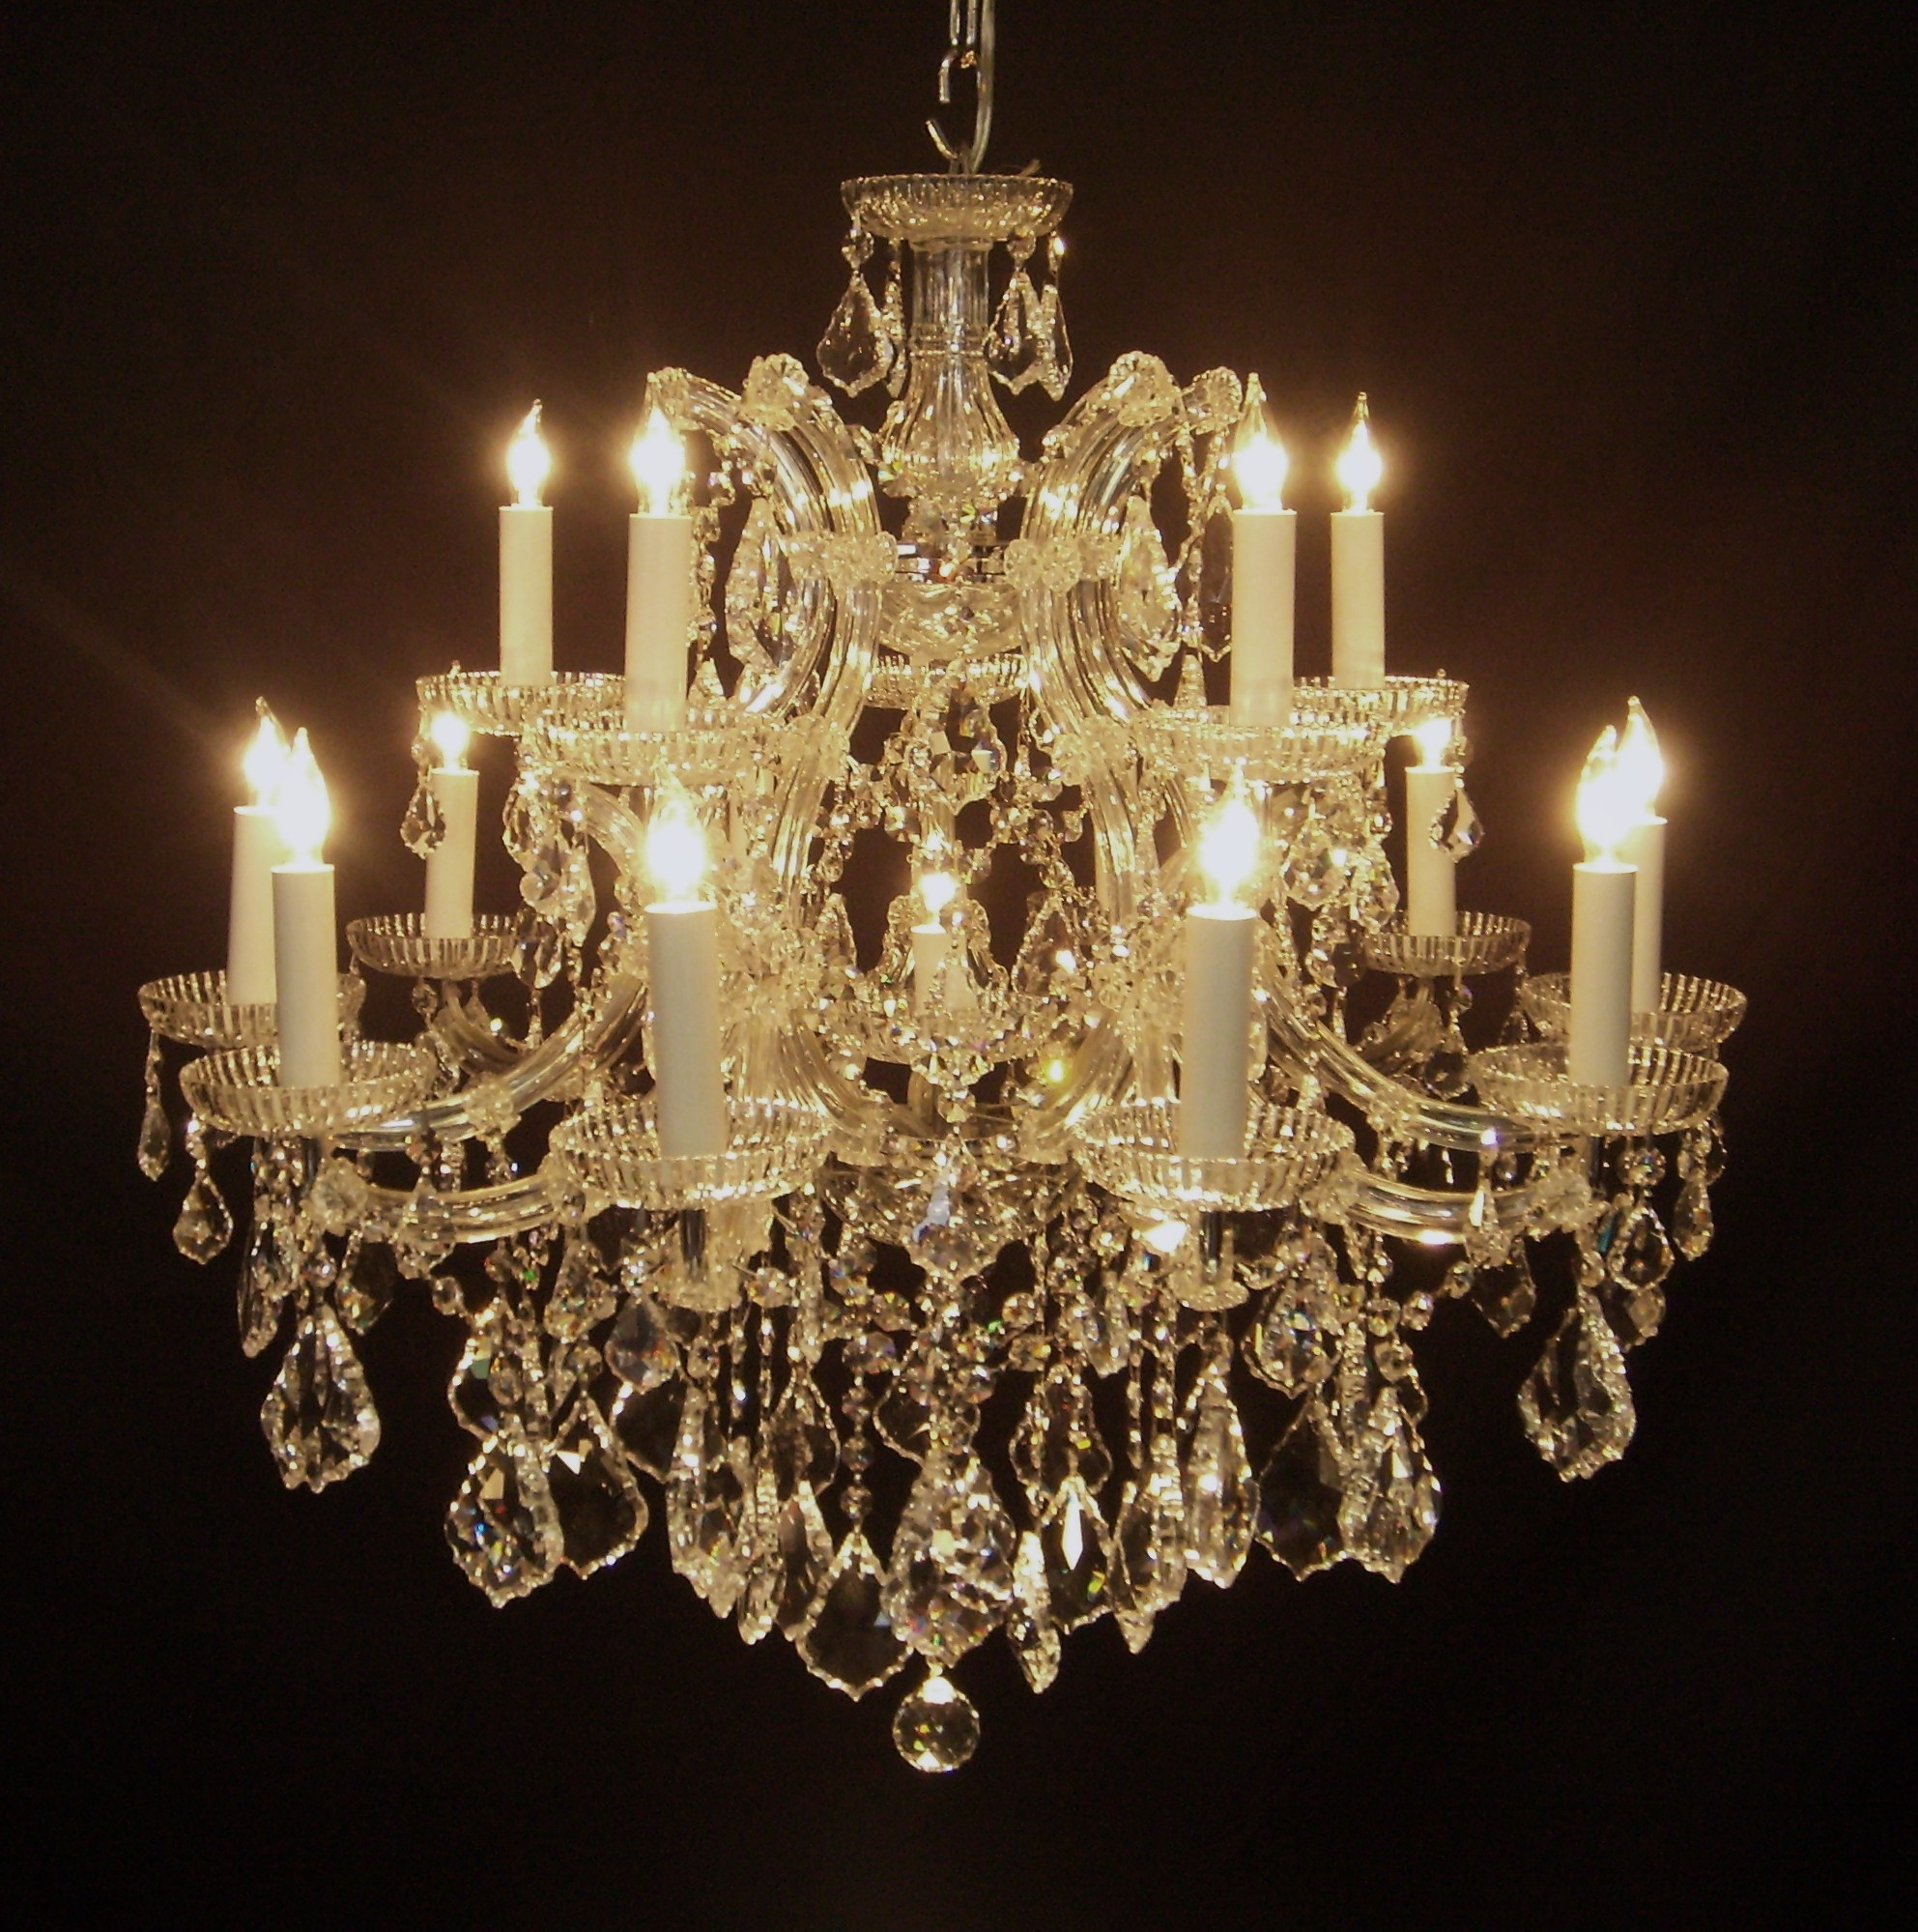 Chandeliers Mortons Antiques Throughout Italian Chandelier Style (View 6 of 15)